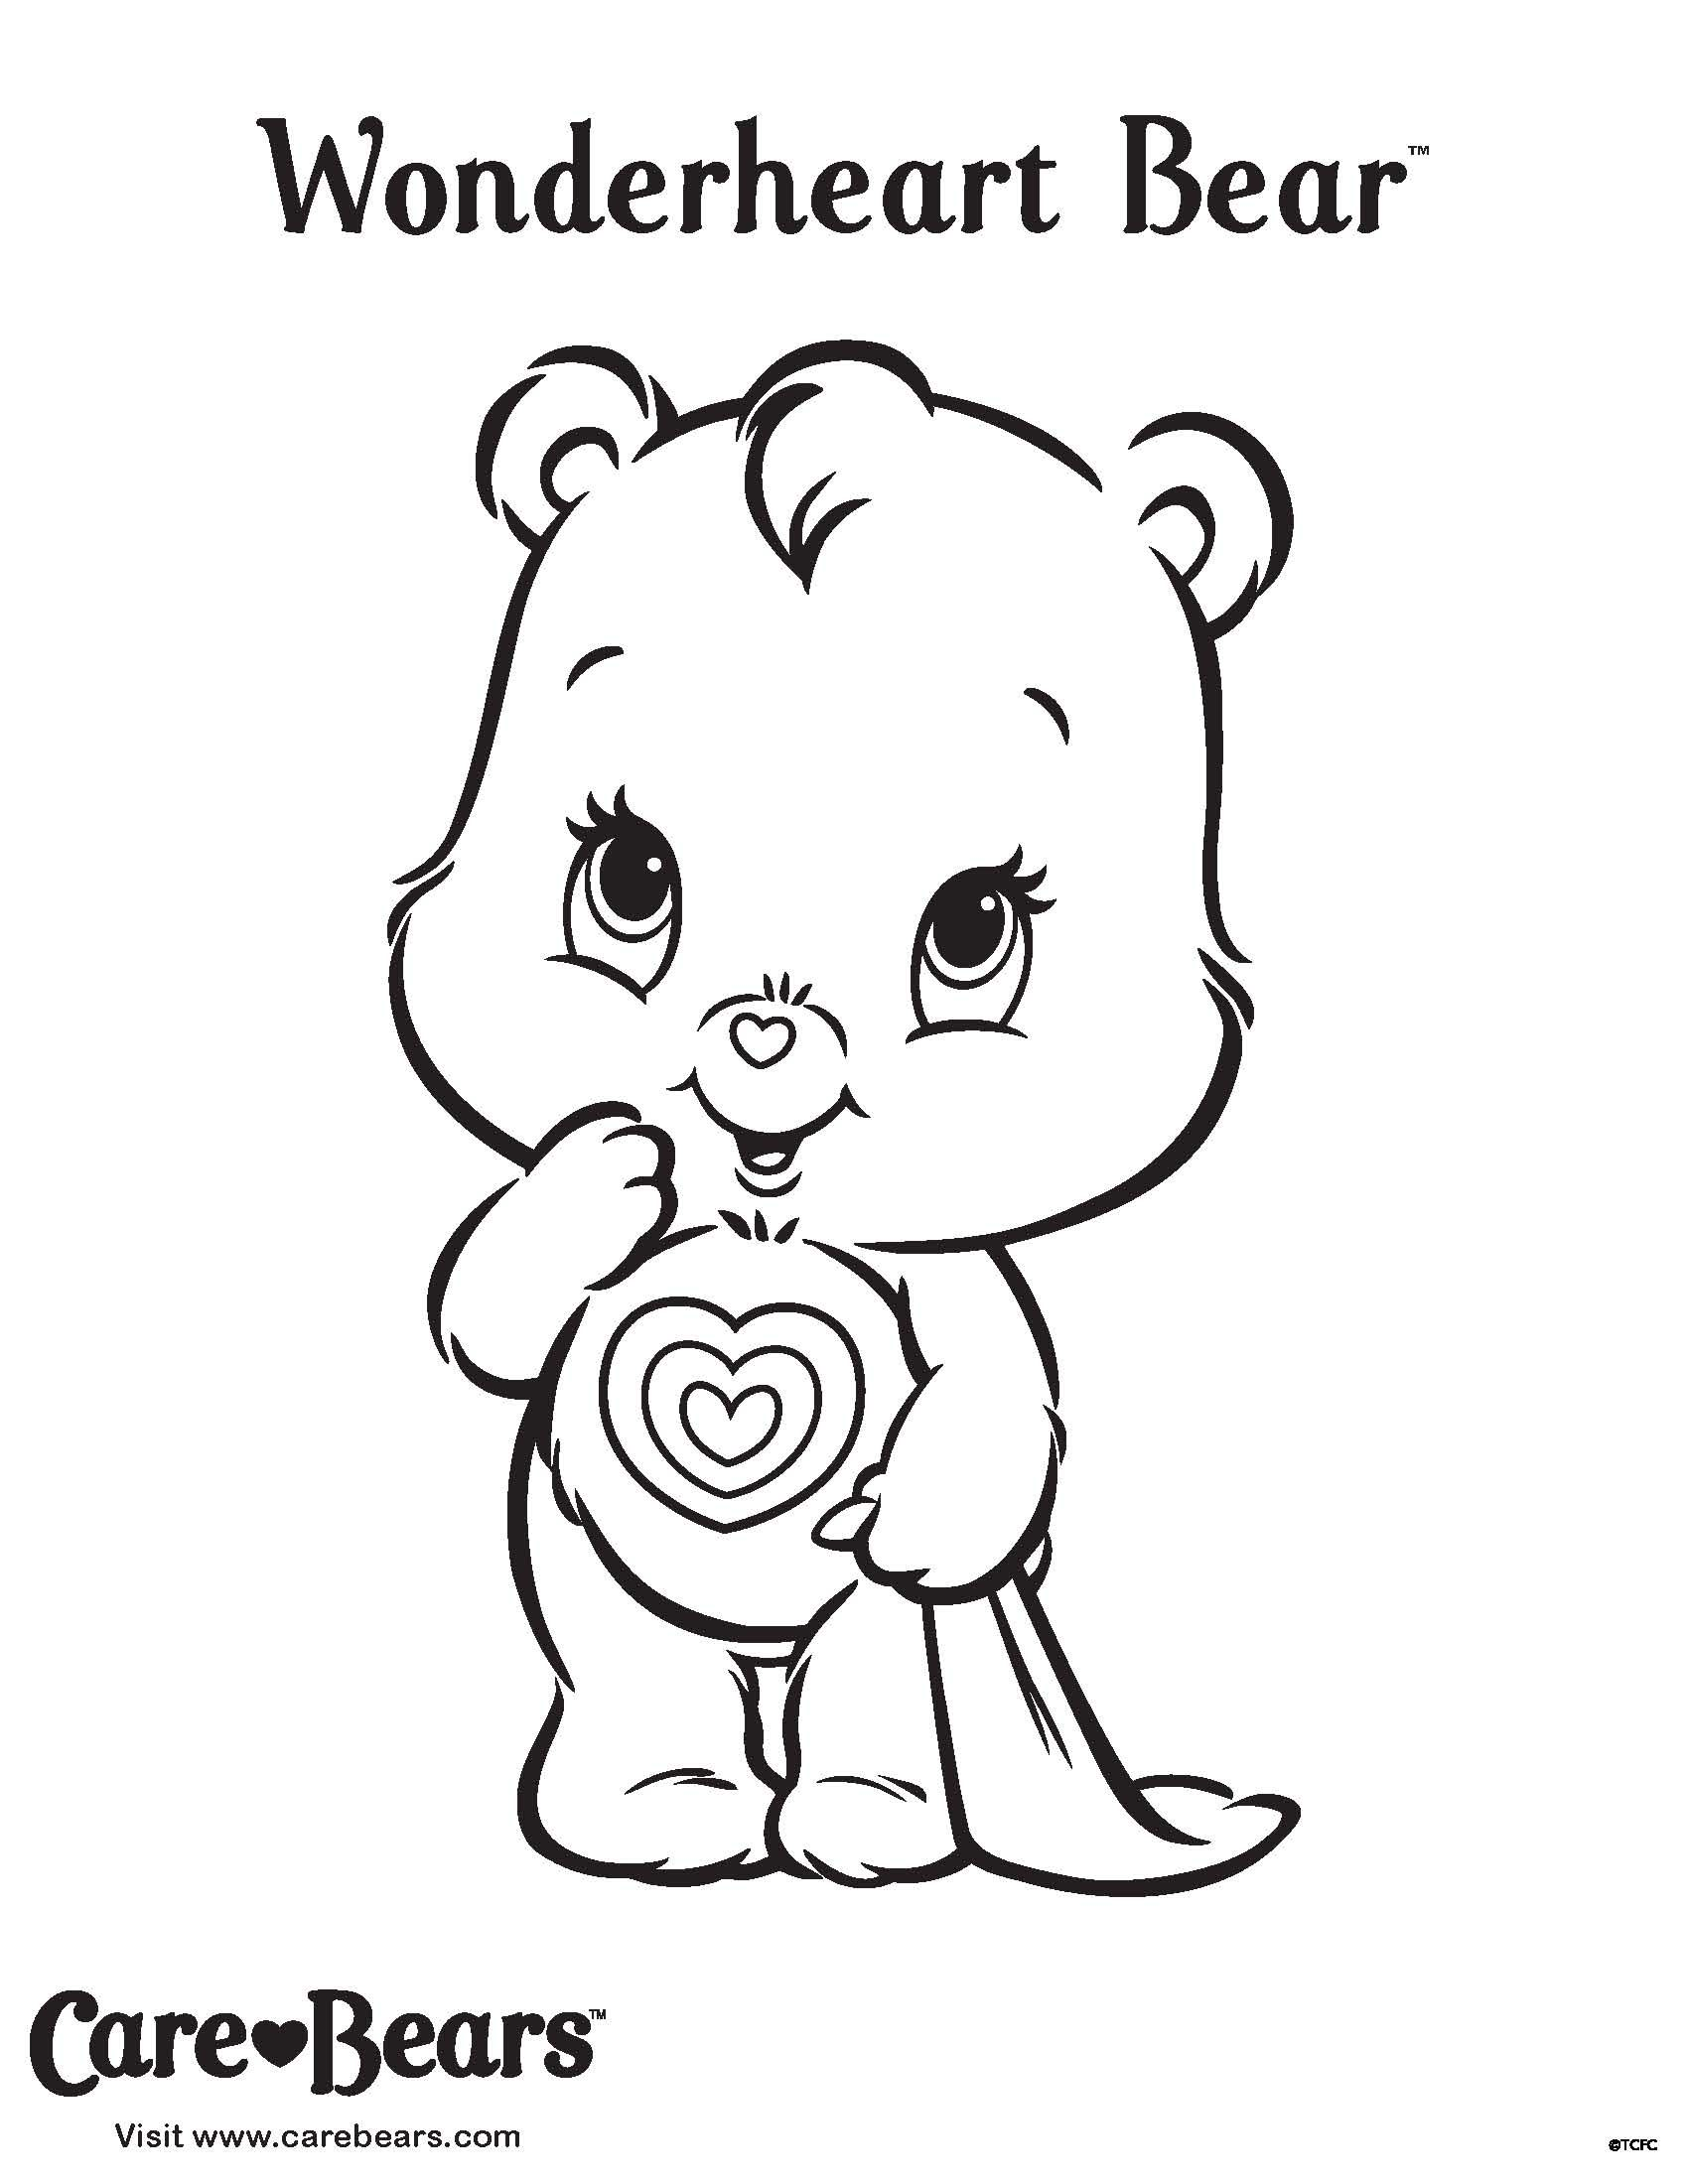 What Is Wonderheart Wondering? Bear Coloring Pages, Care Bears